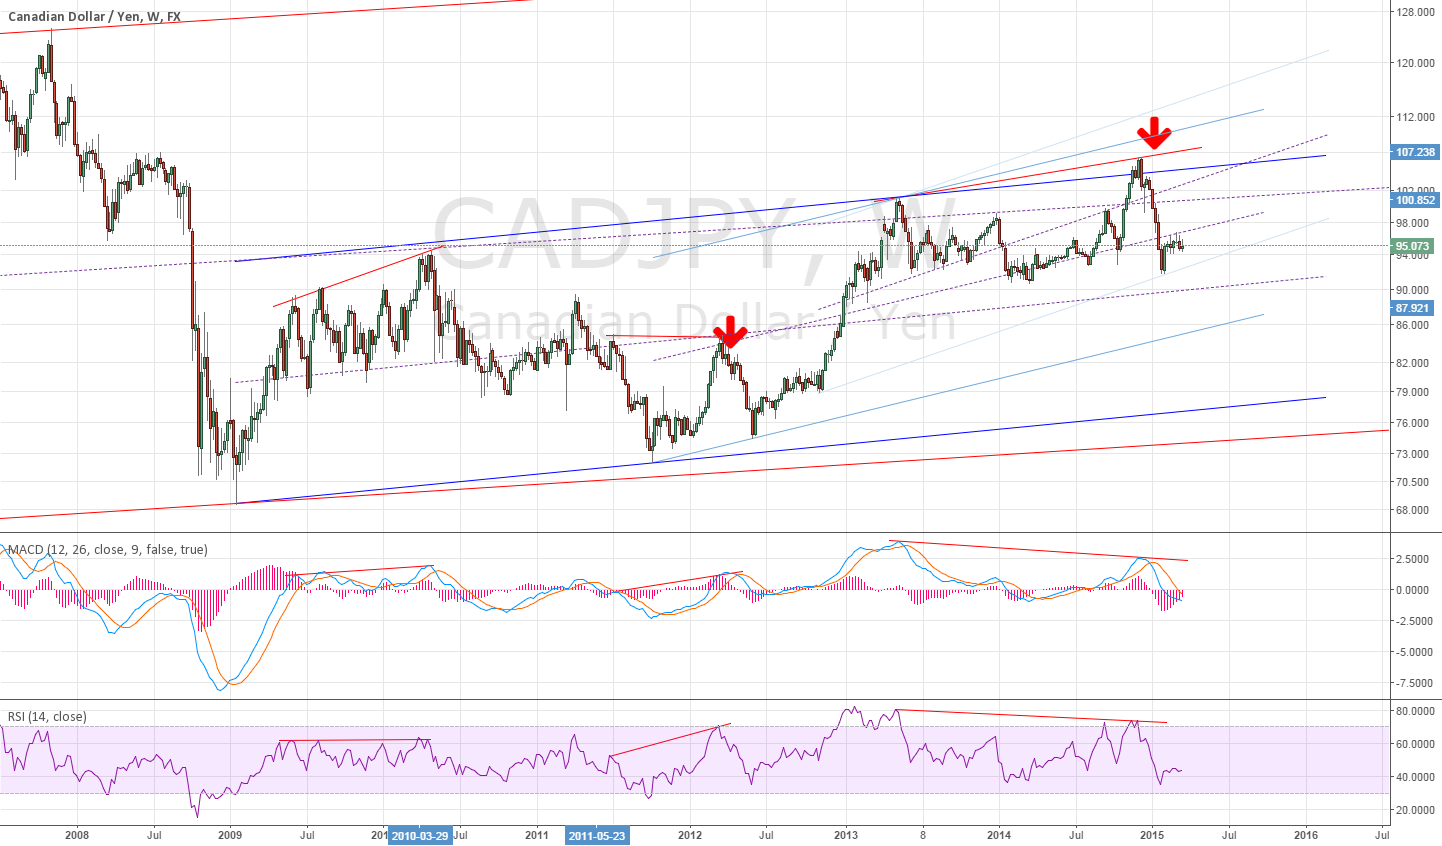 Weekly for CADJPY divergence ~